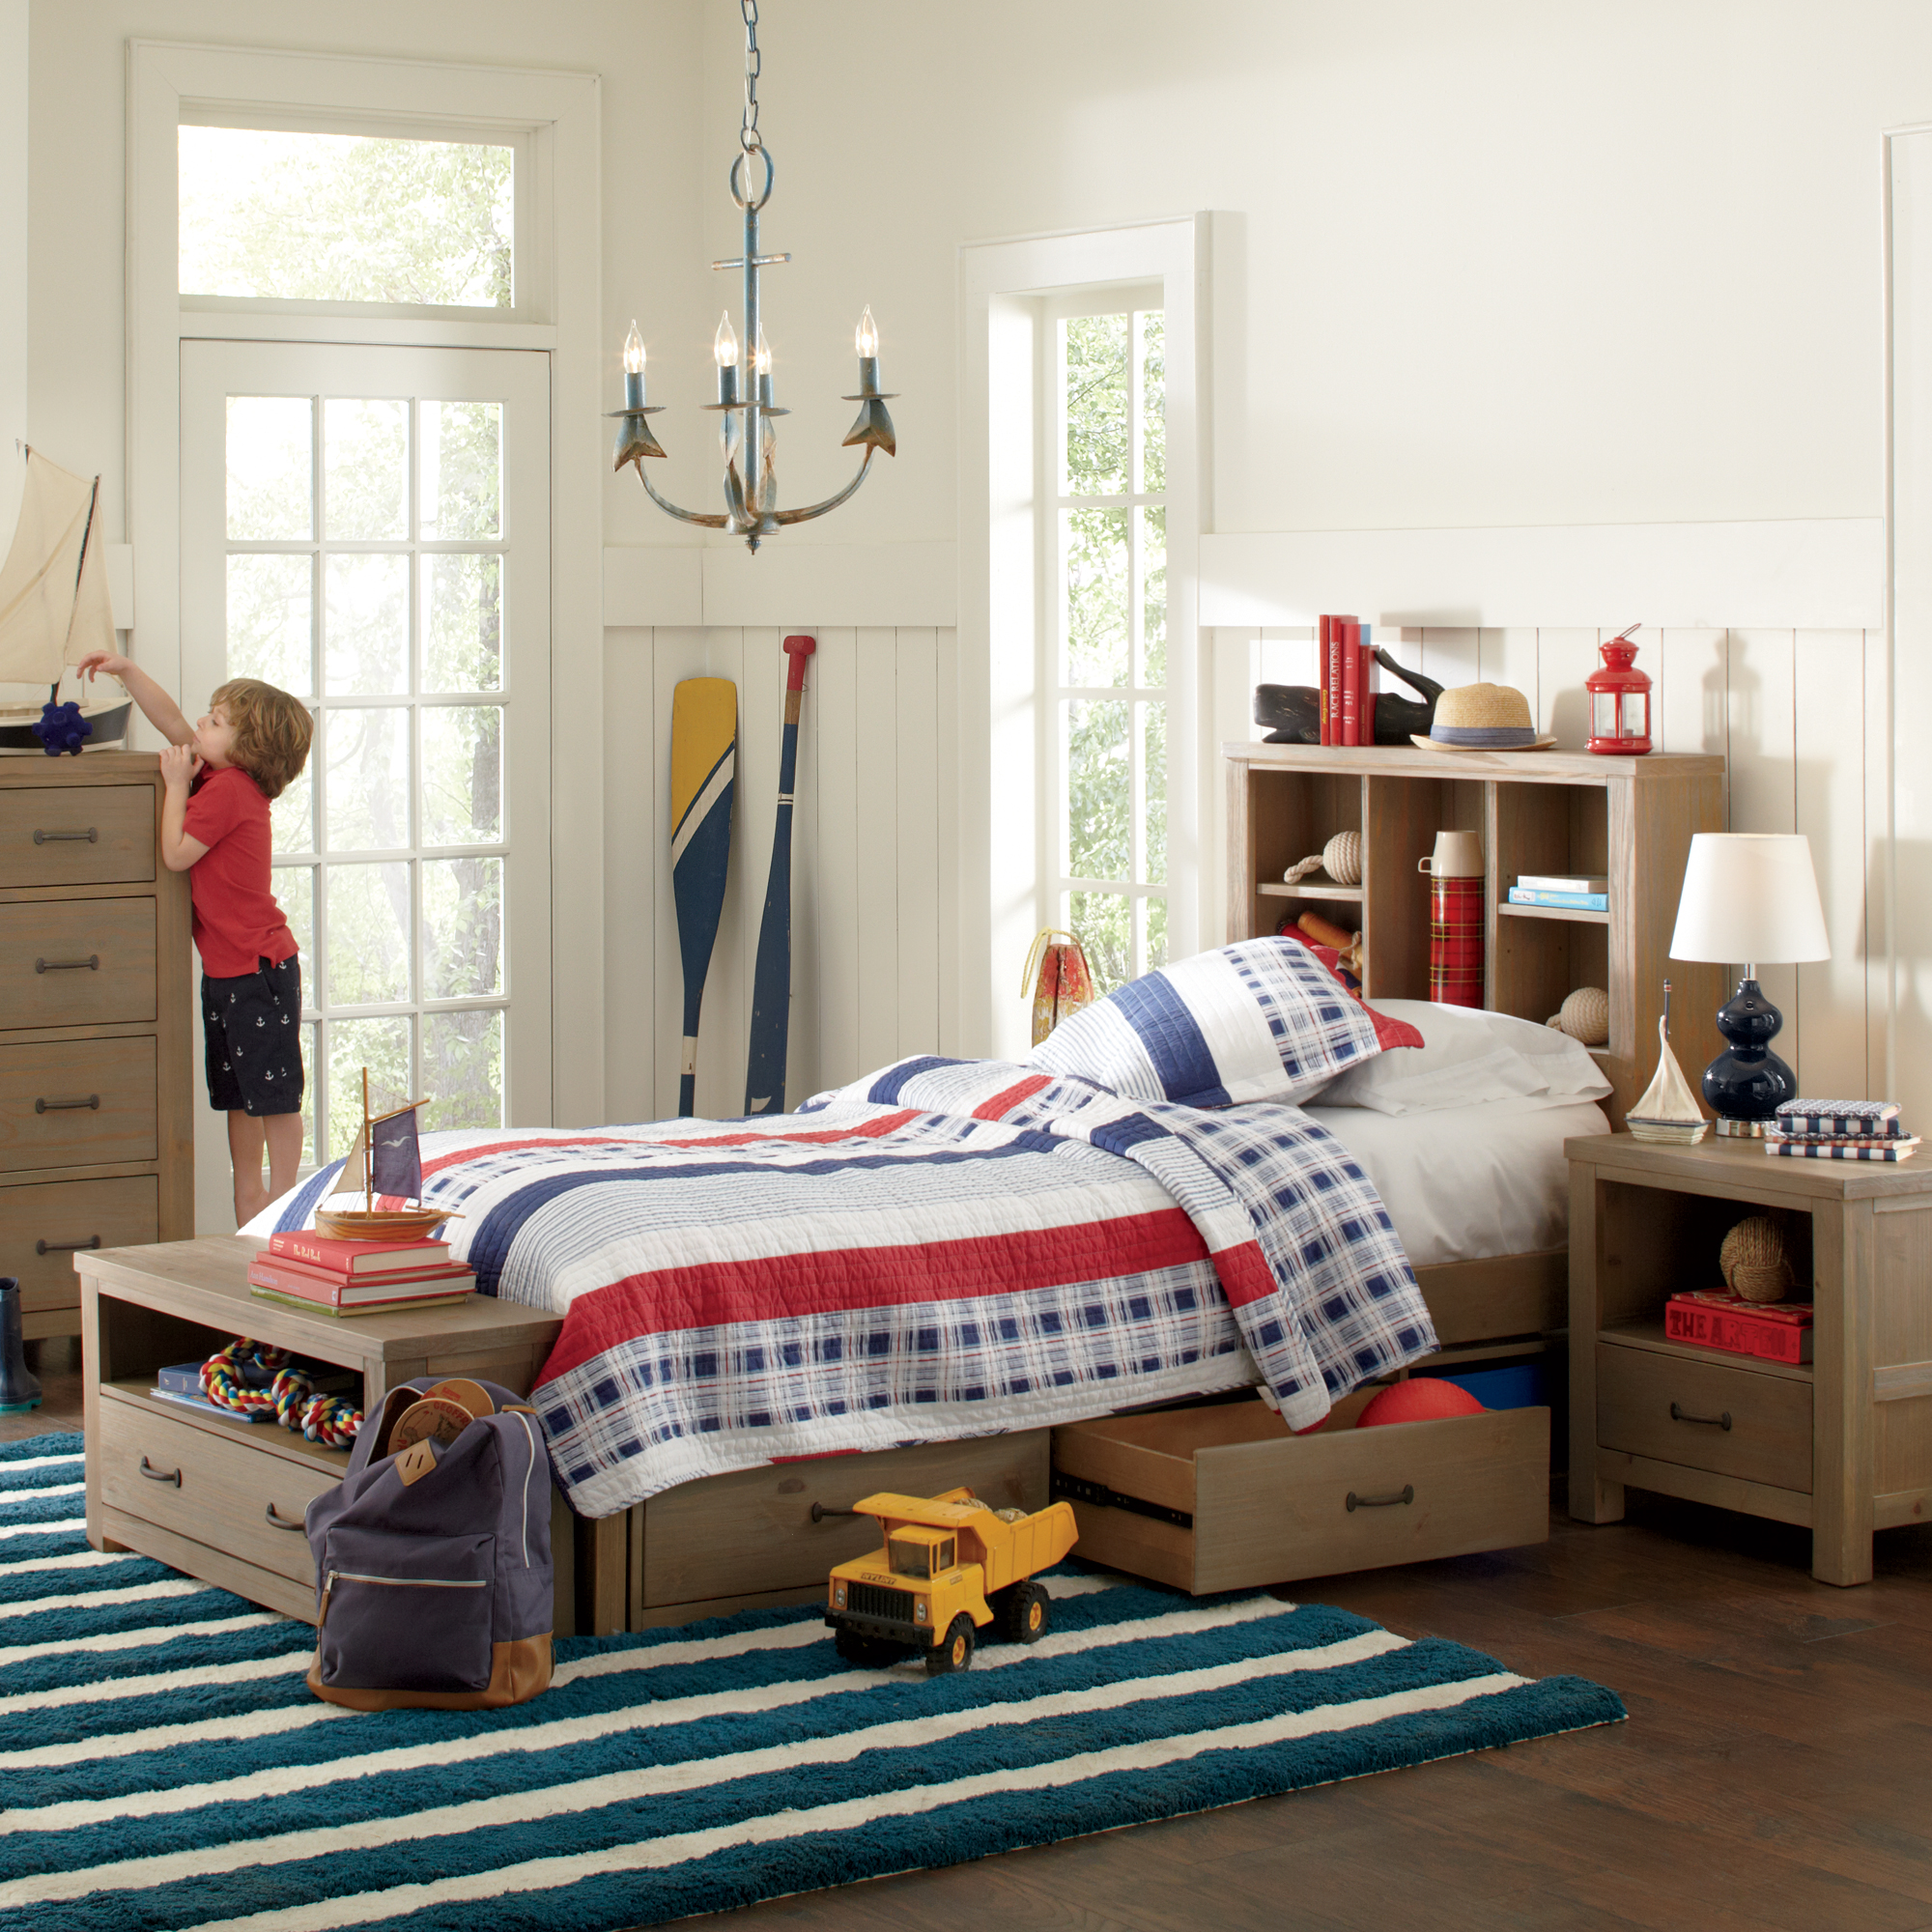 Farmhouse & Rustic Kids Bedroom Furniture | Birch Lane